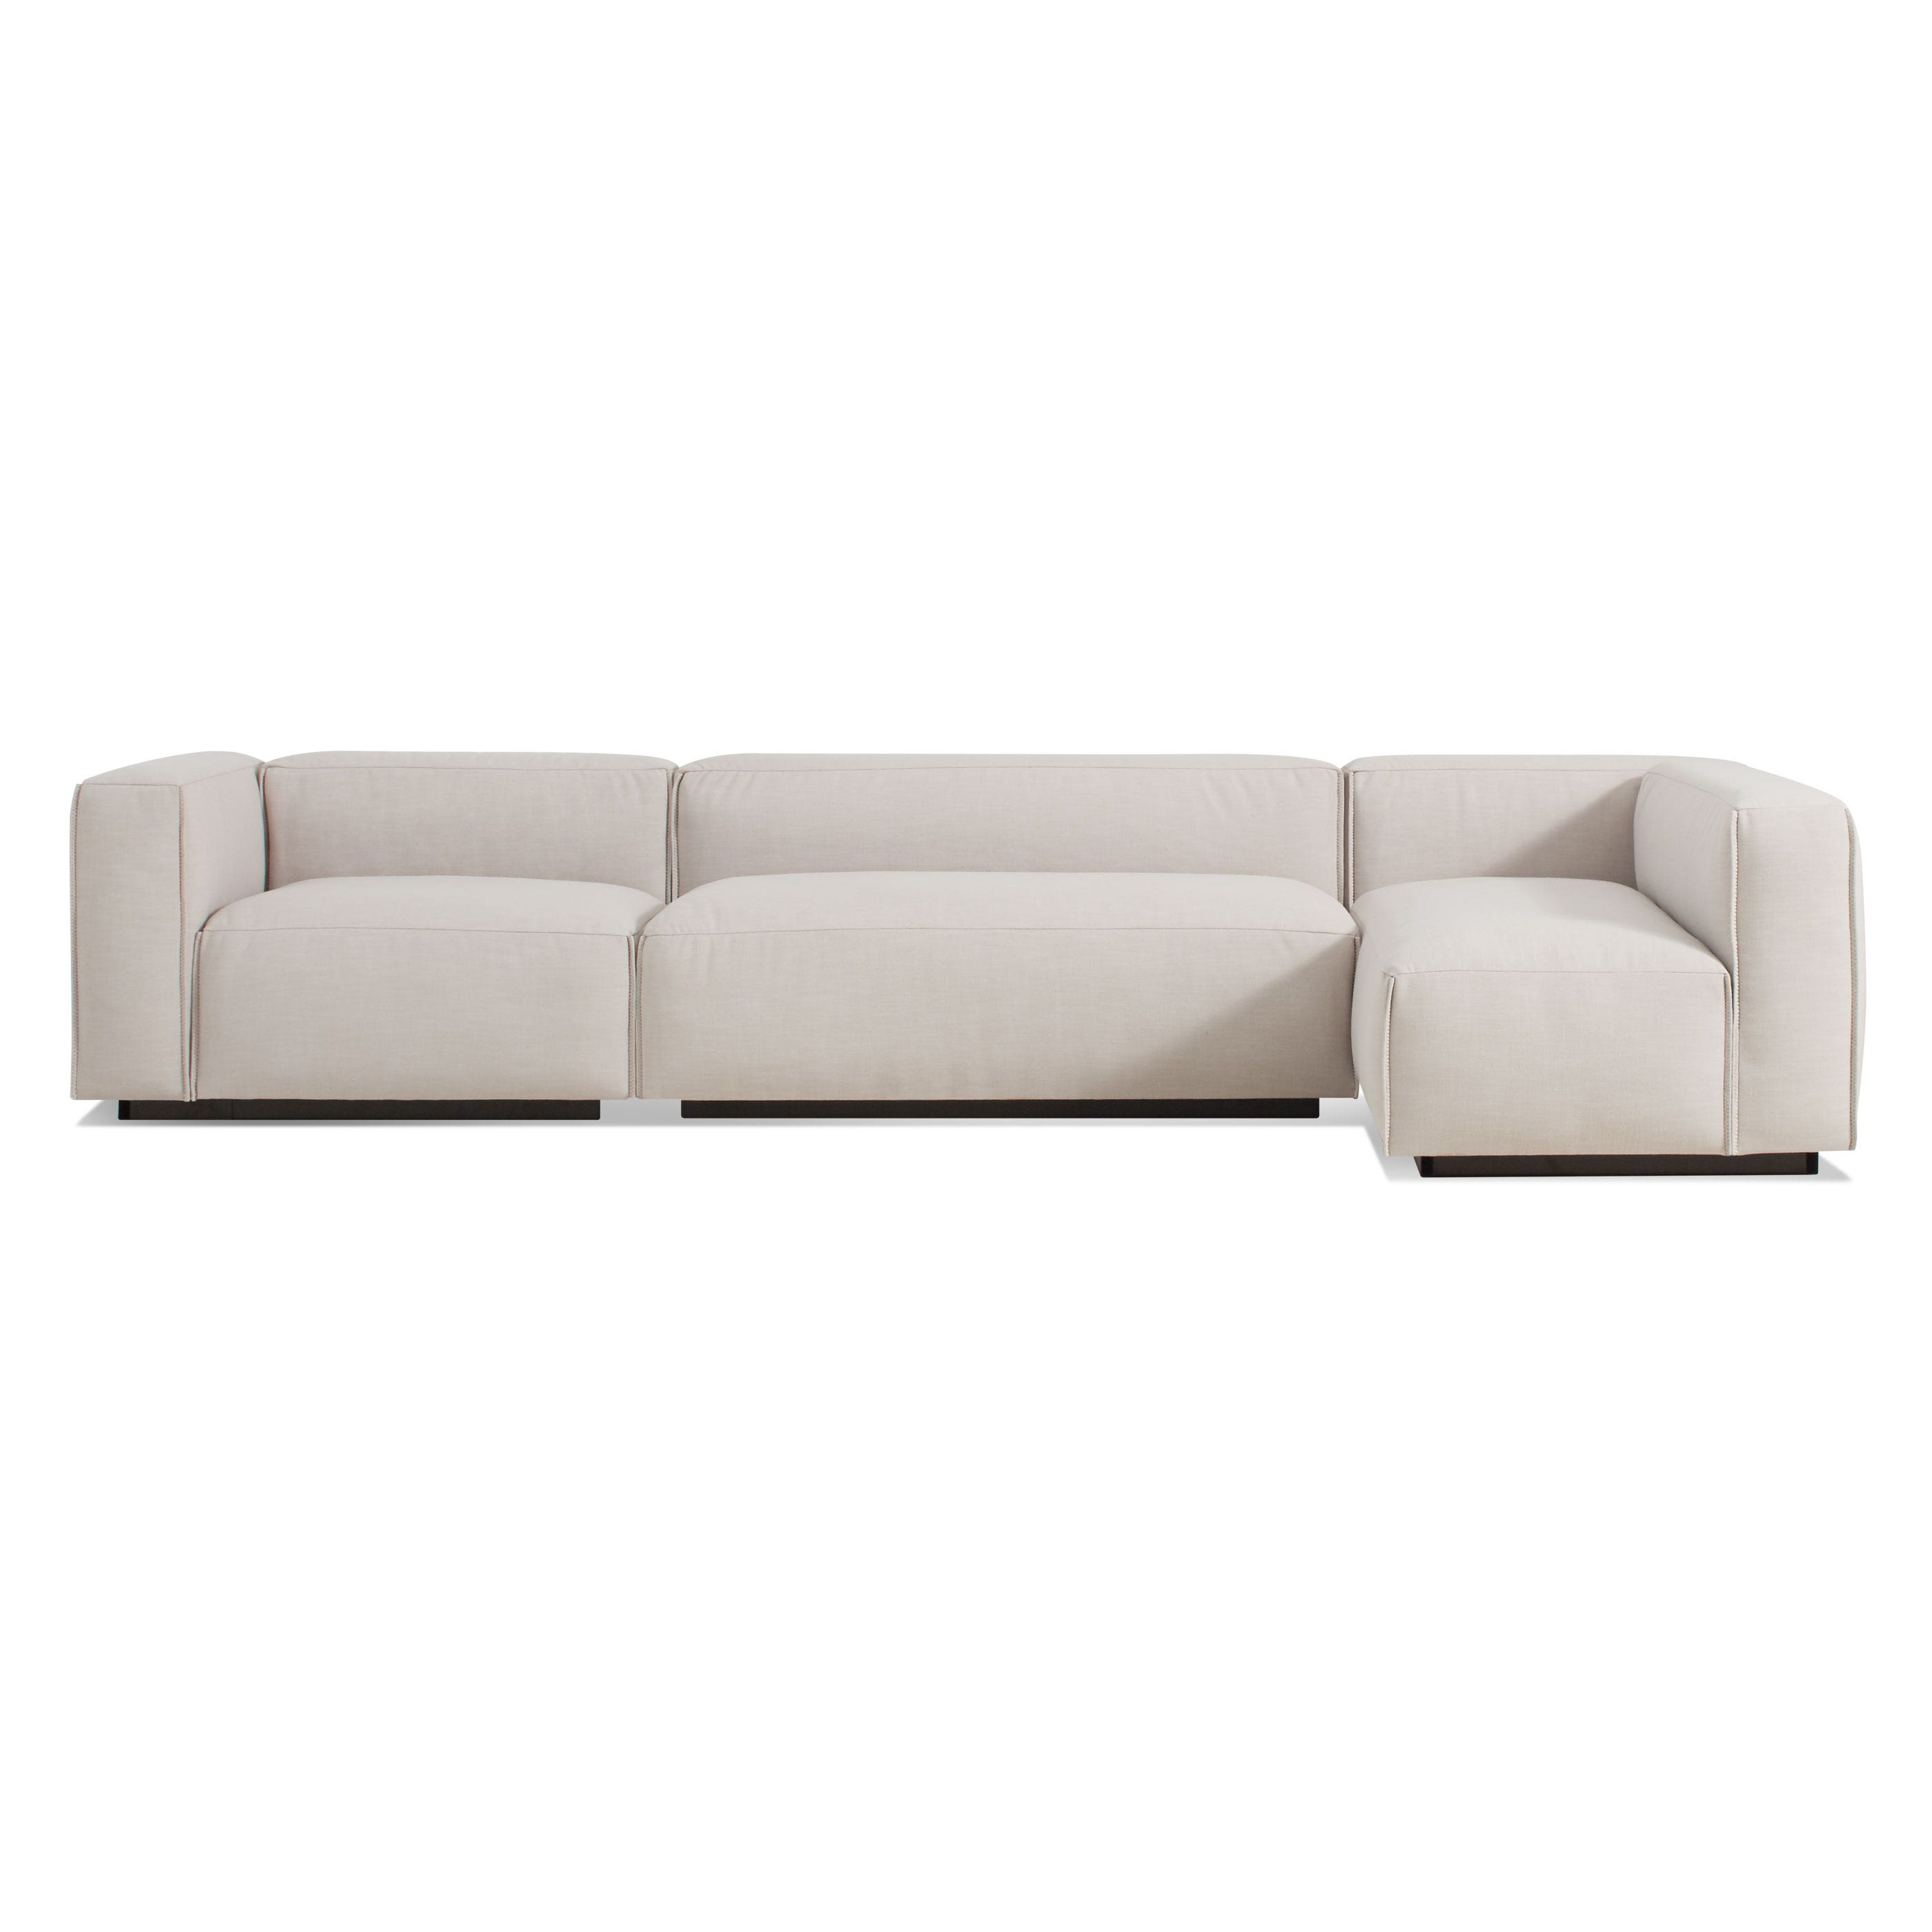 Previous image Cleon Medium+ Sectional Sofa - Craig Sand ...  sc 1 st  Blu Dot : blu dot sectional - Sectionals, Sofas & Couches